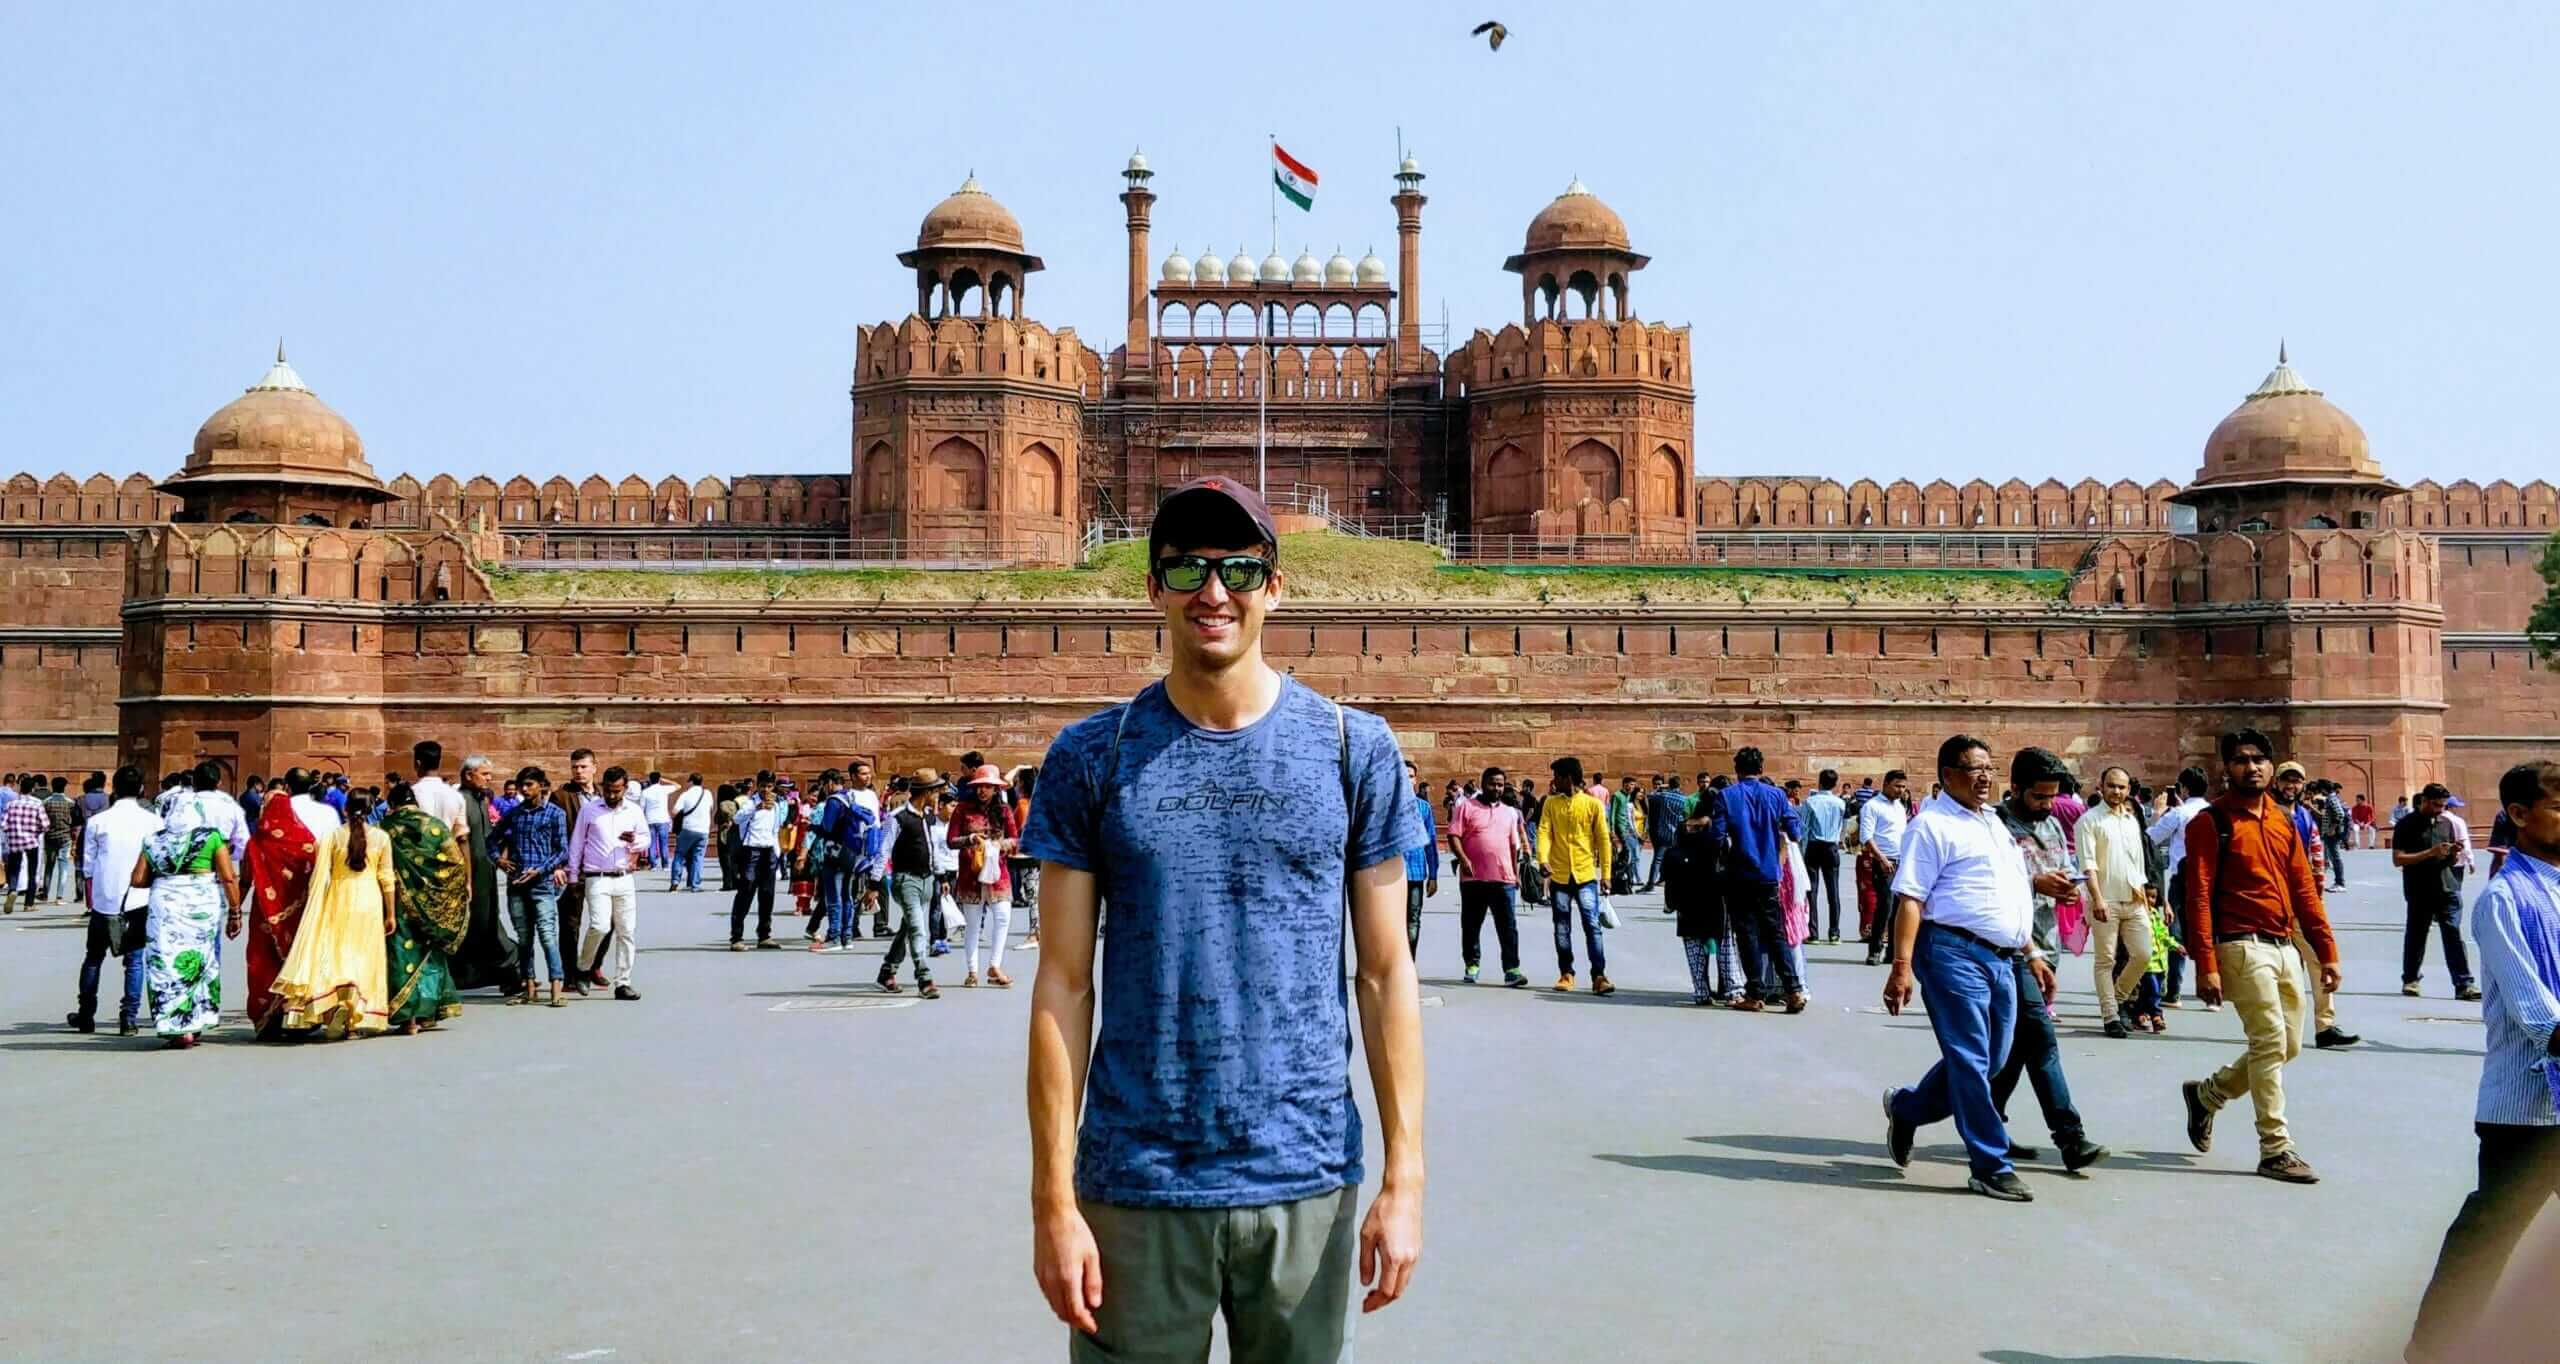 While backpacking Delhi, I saw many sites including the historic Red Fort